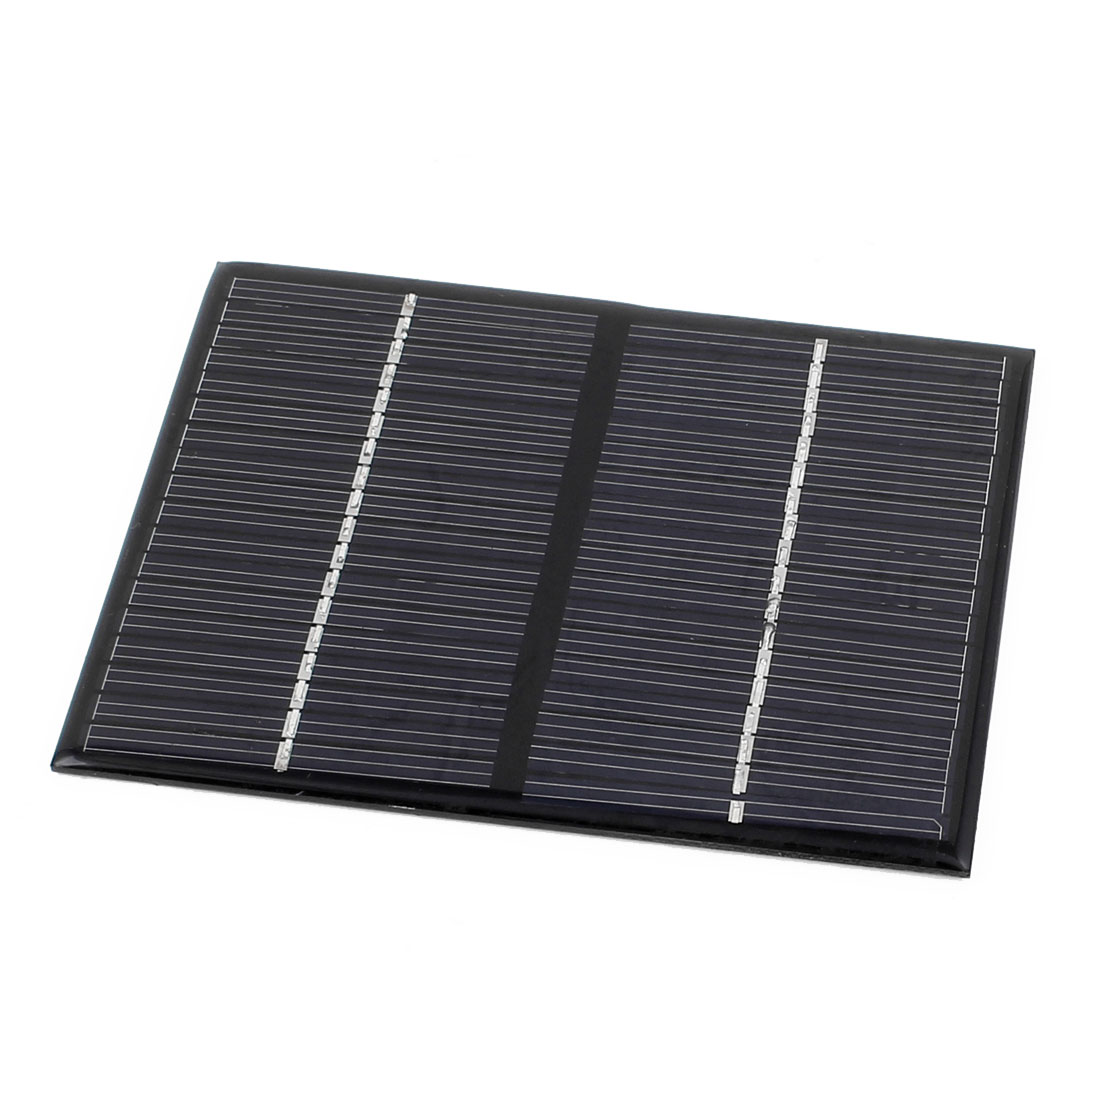 18V 1.5W DIY Polycrystallinesilicon Solar Panel Power Cell Battery Charger 115mm x 90mm